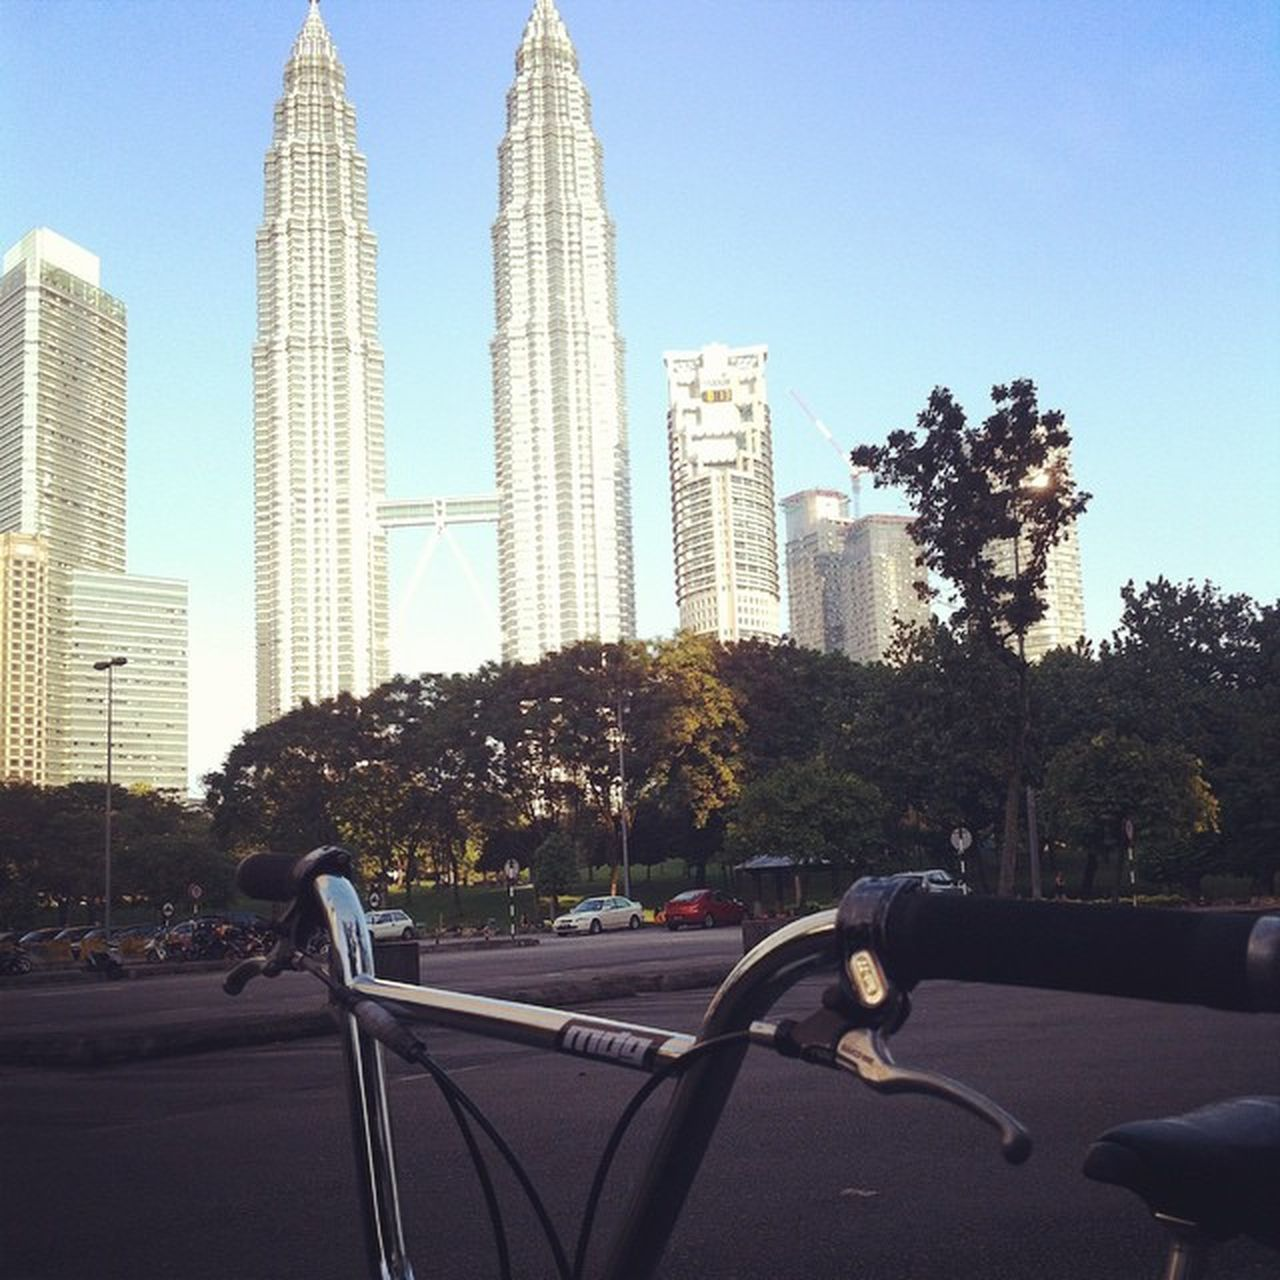 Myride Soloride Klcc Kualalumpur with morning nice view.